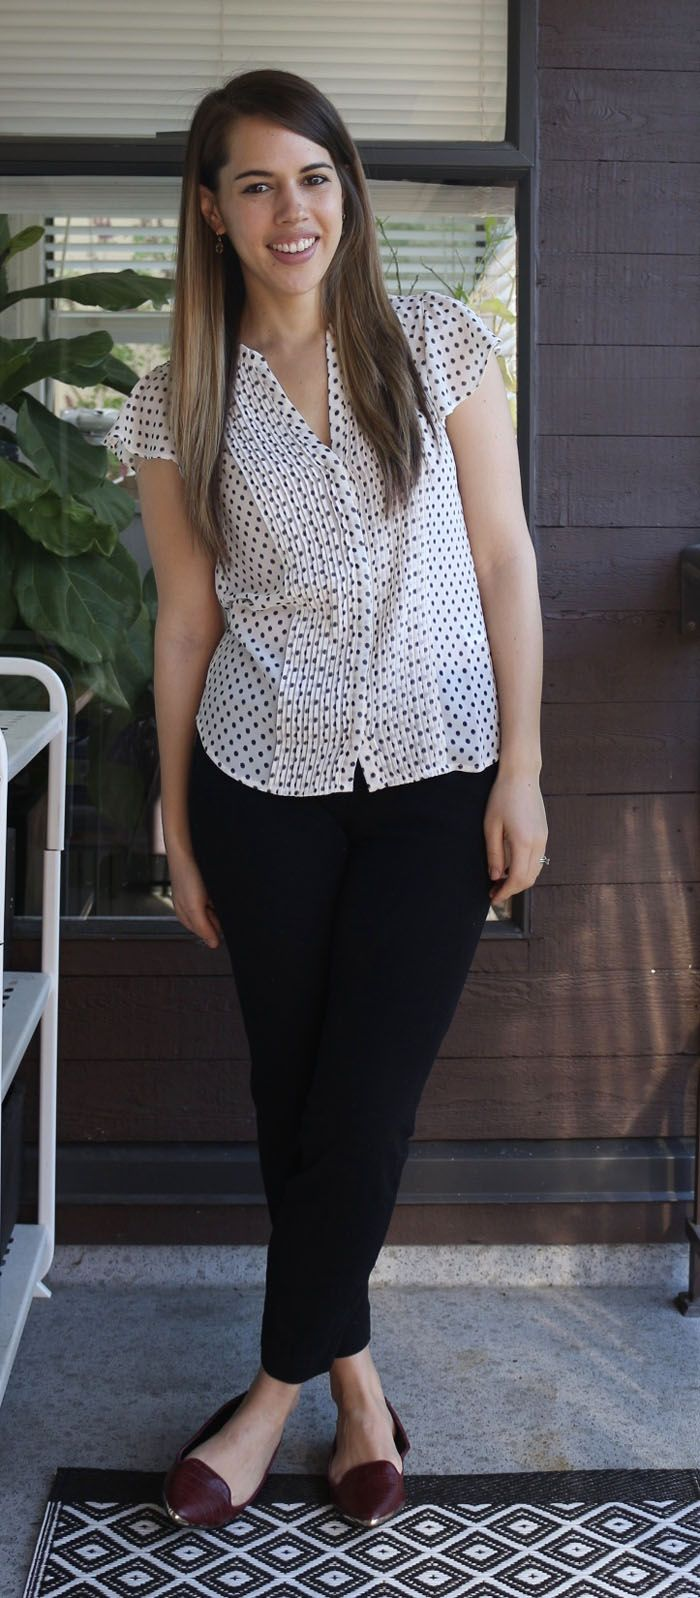 Jules in Flats April 2016 Outfits H&M polka dot blouse, Old Navy Pixie Pants, Aldo flats